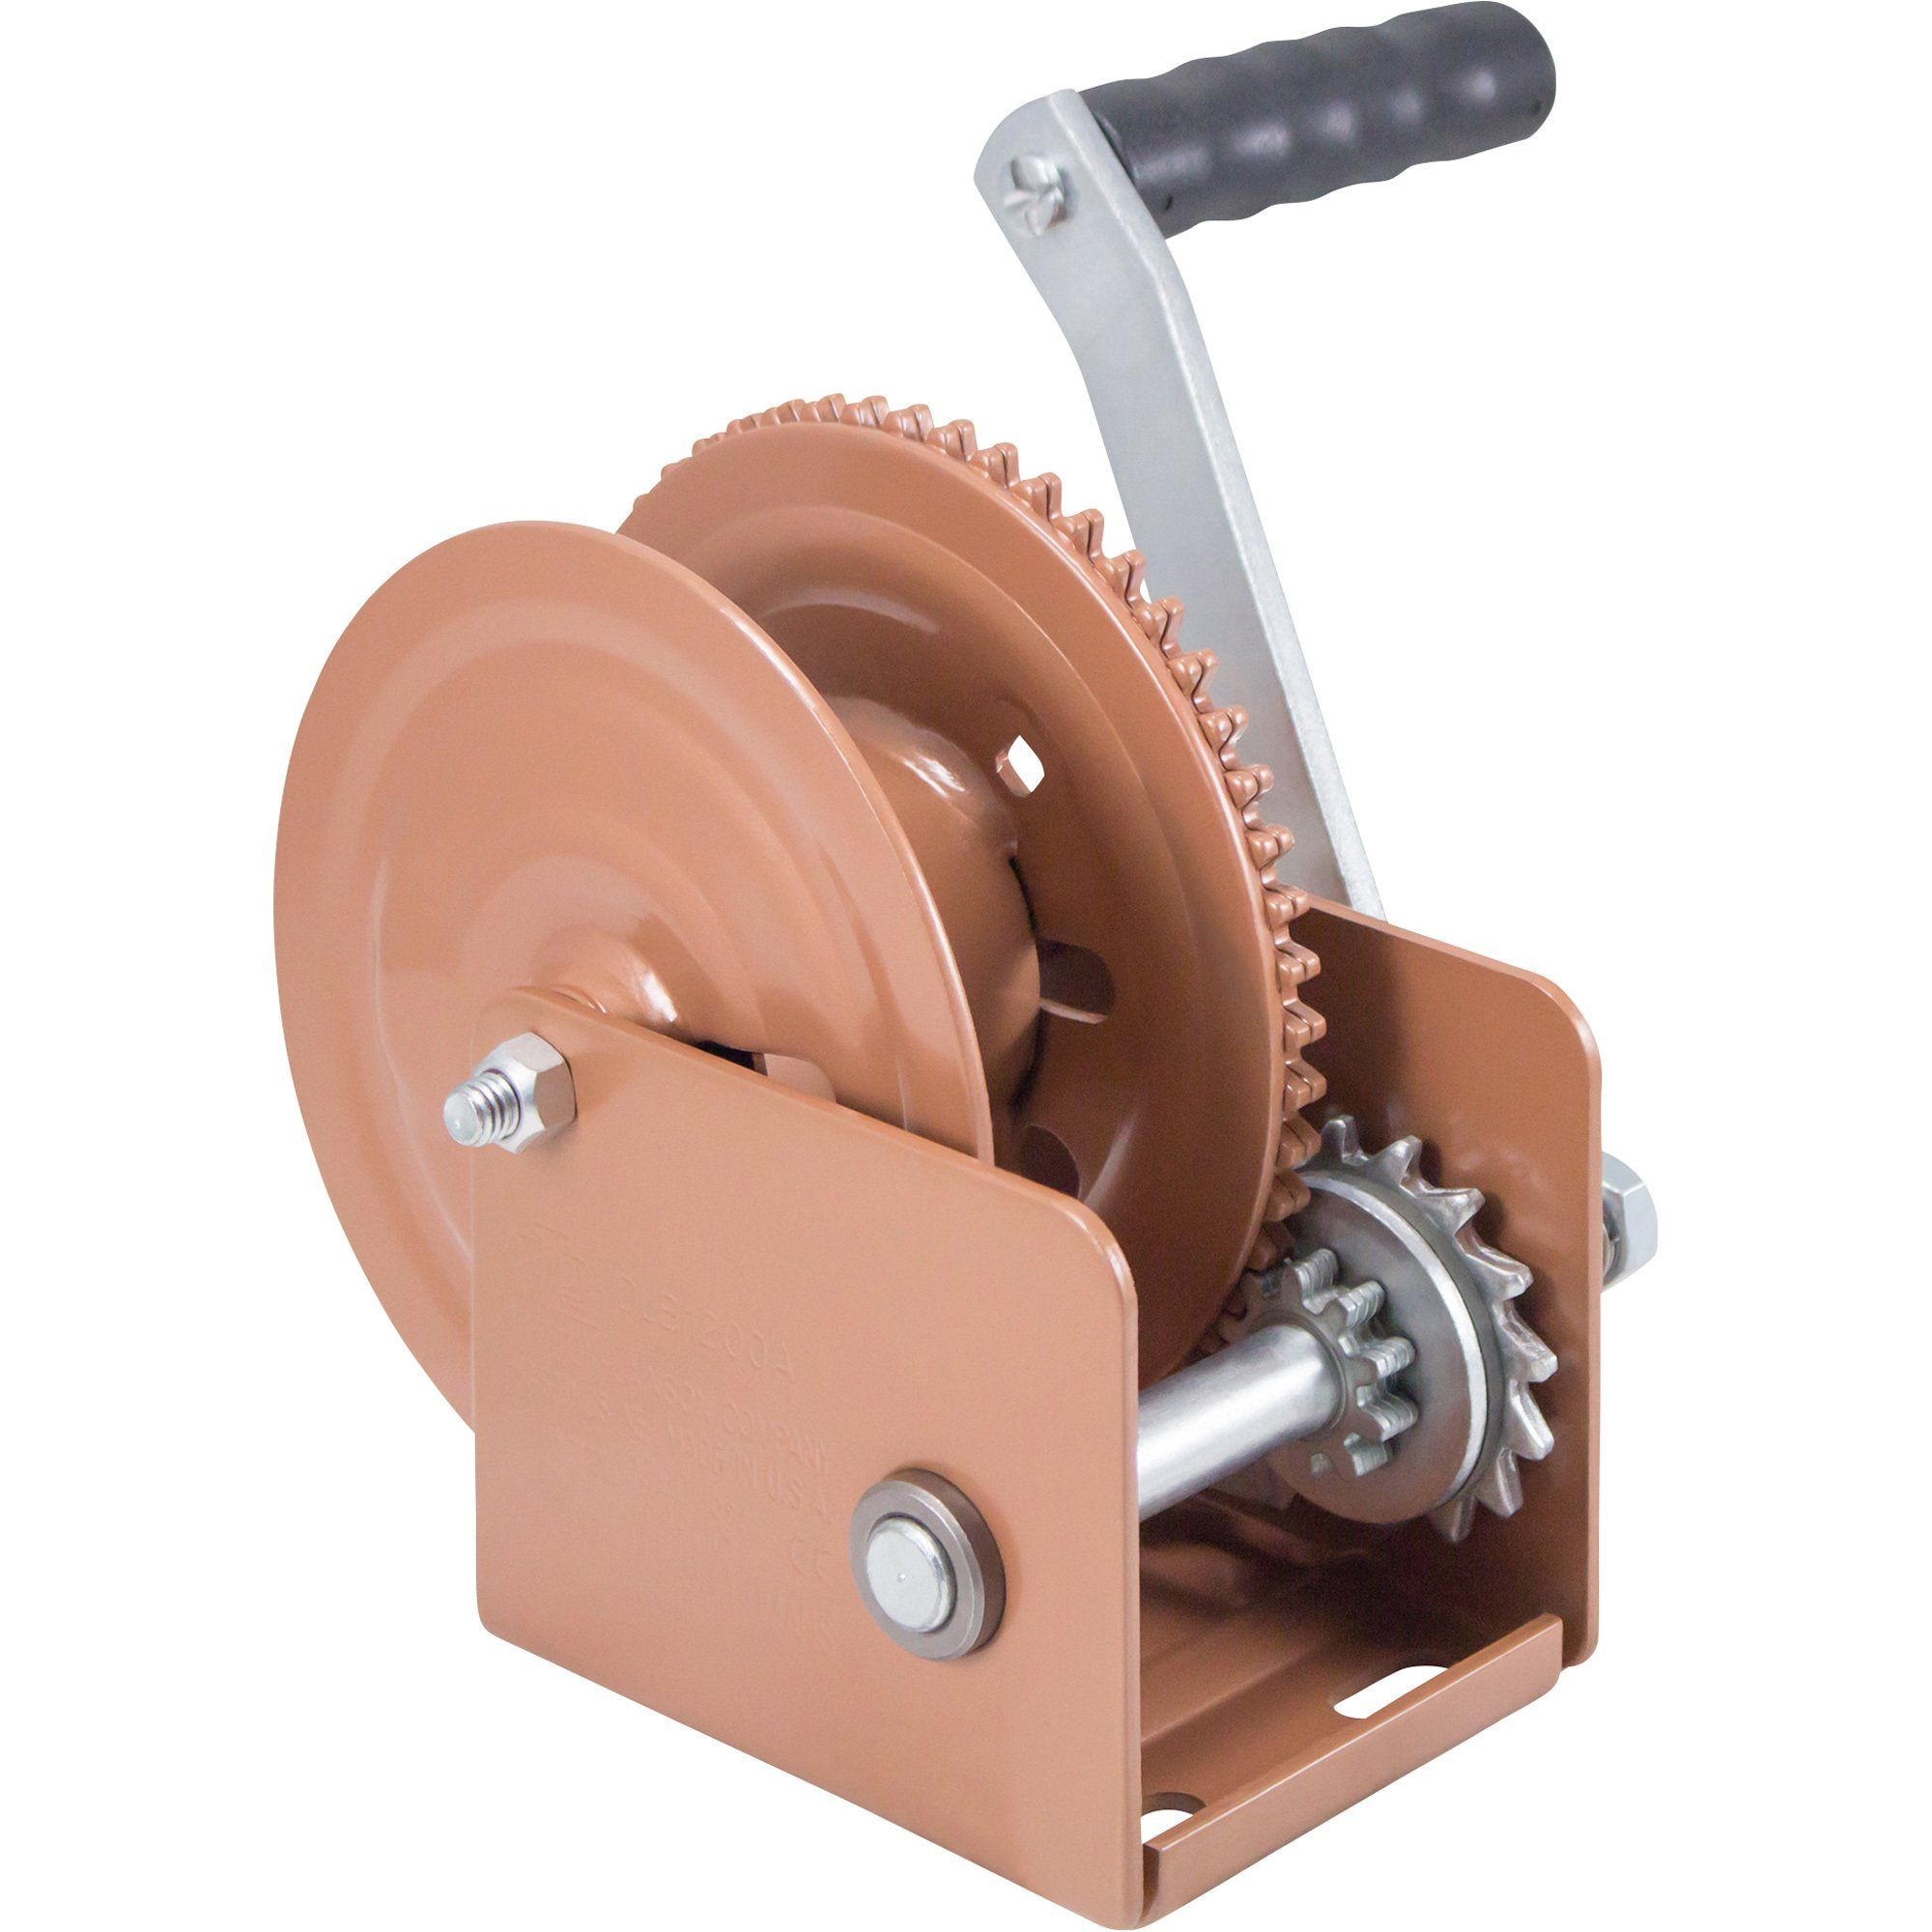 Dutton-Lainson Single Speed Hand Winch With Automatic